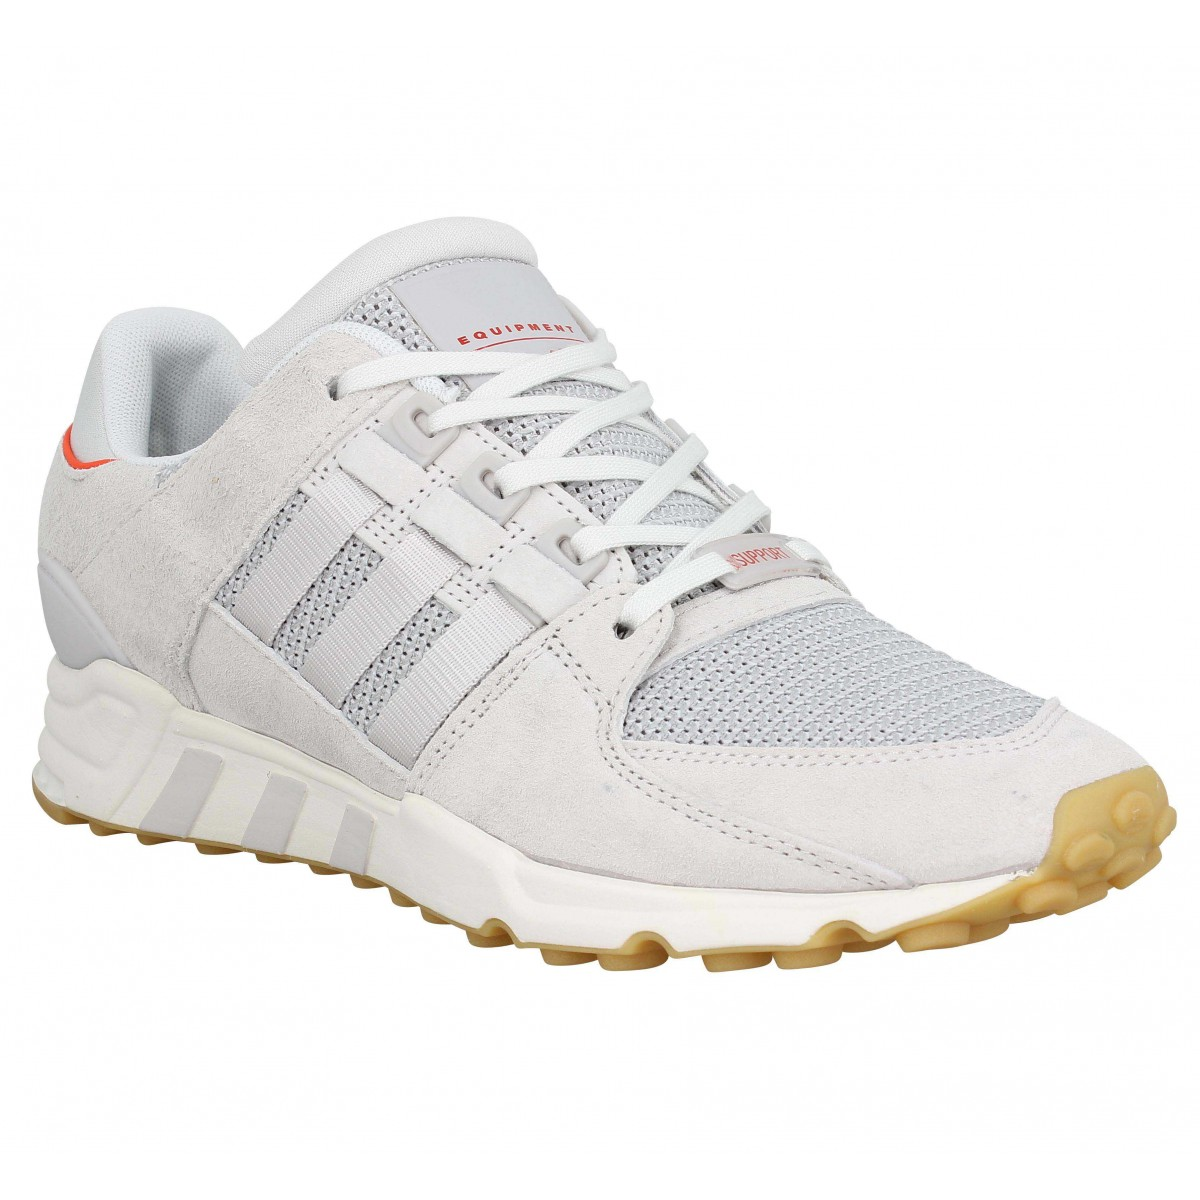 Baskets ADIDAS EQT Support RF toile Homme Gris